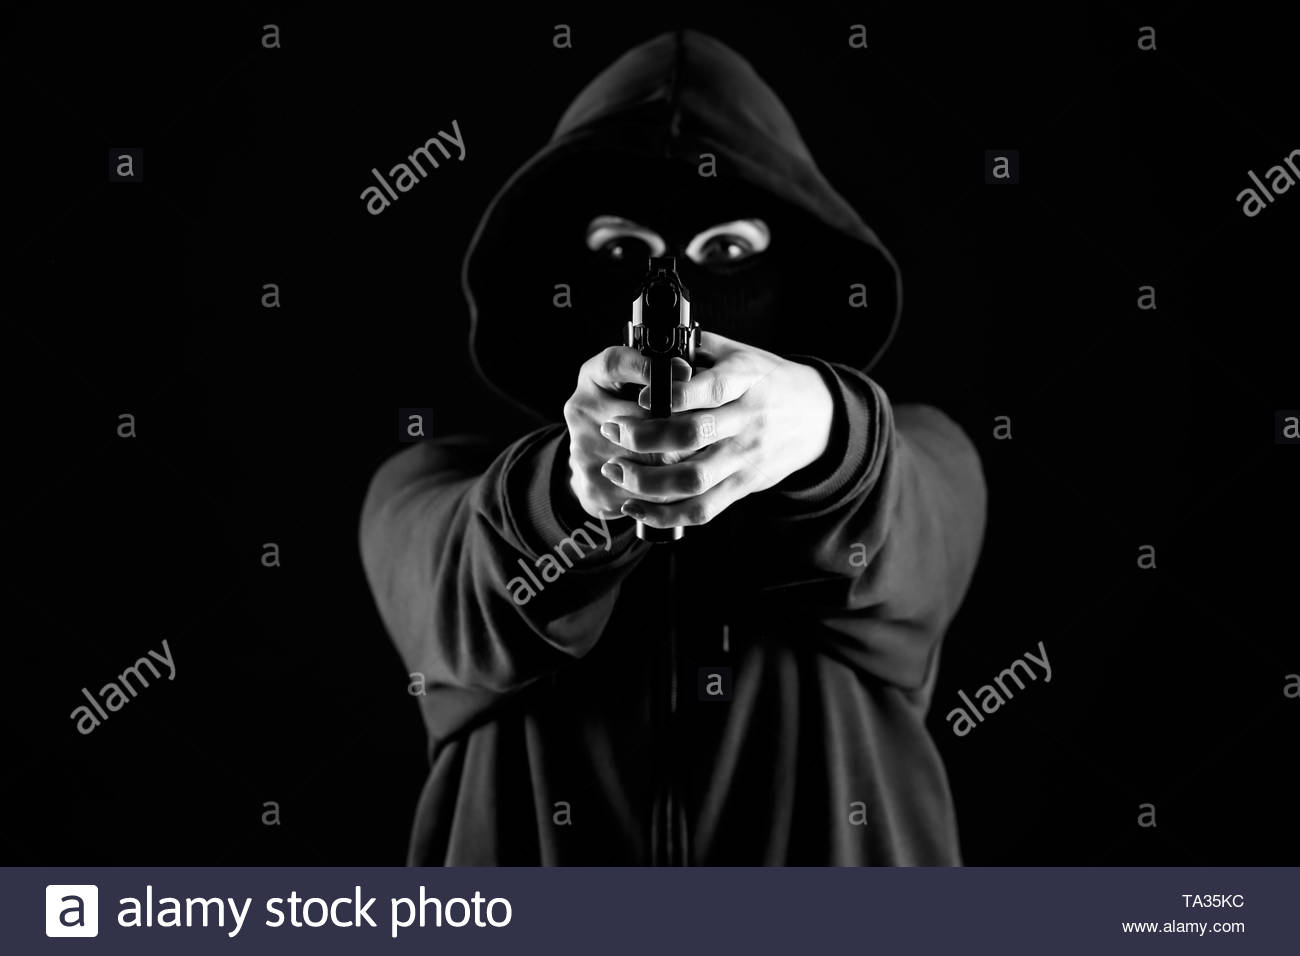 Bandit with gun aiming at viewer on dark background Stock Photo 1300x956